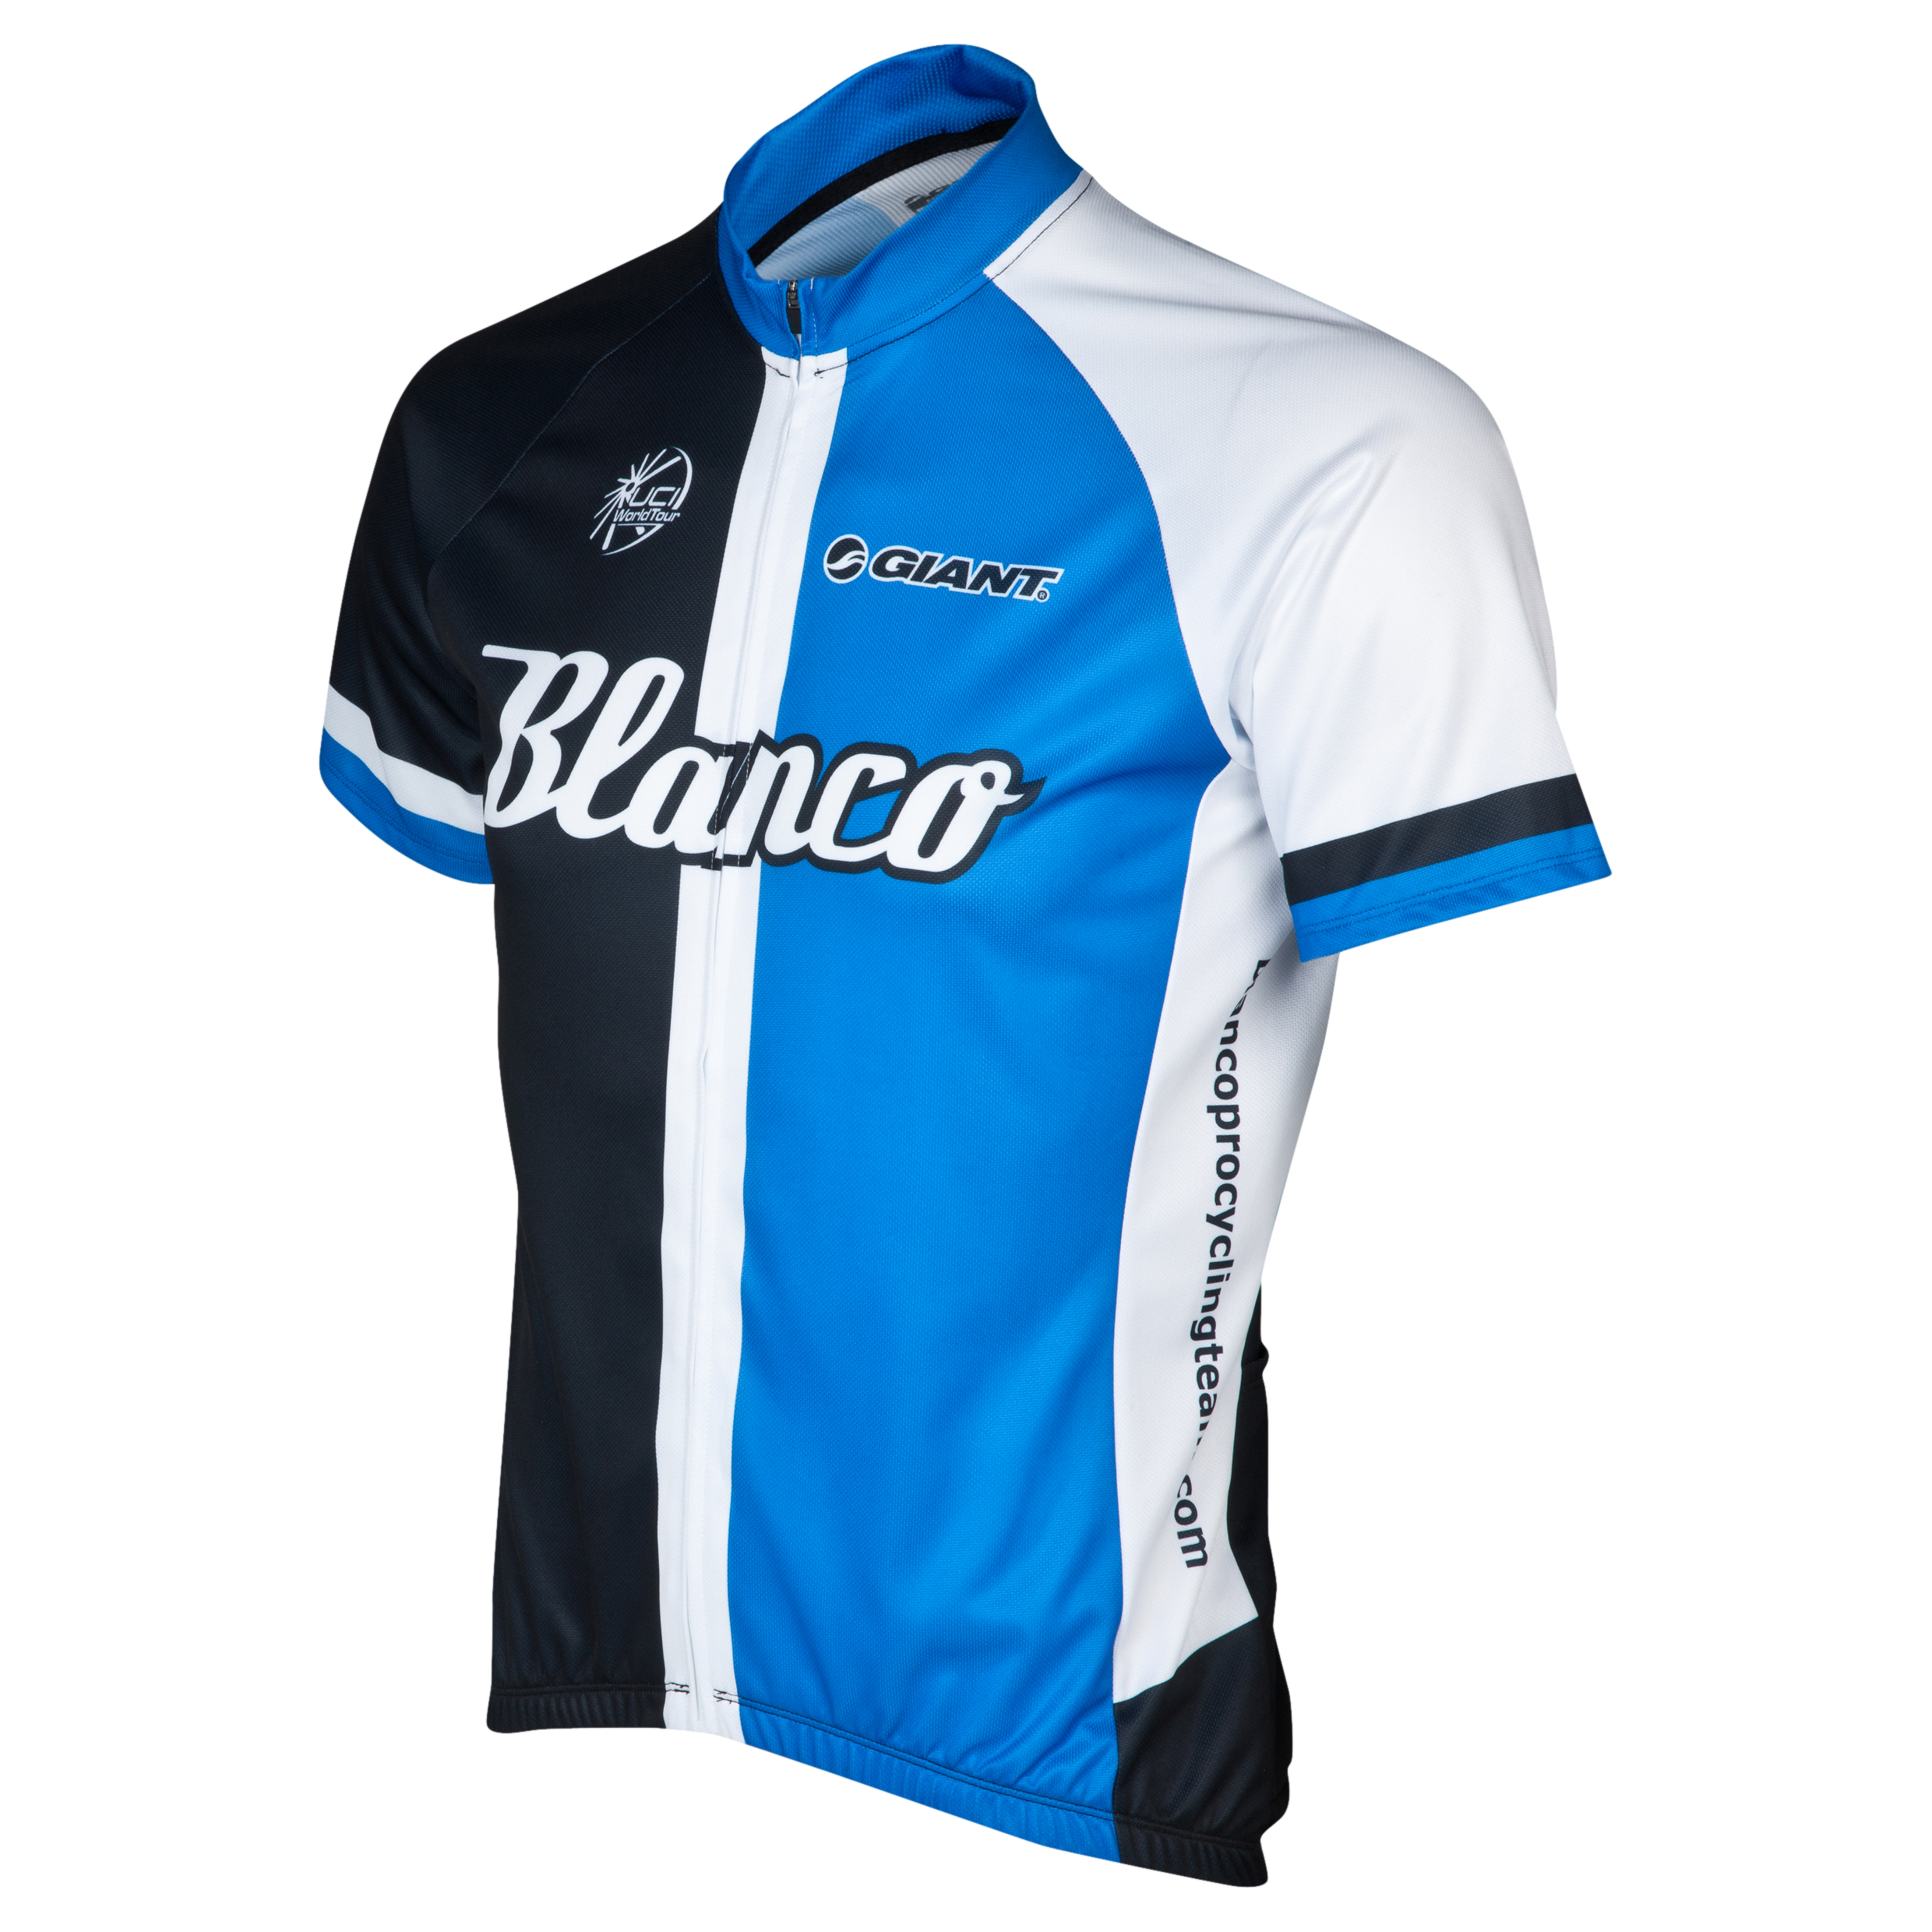 Blanco Pro Cycling Team Replica Team Jersey